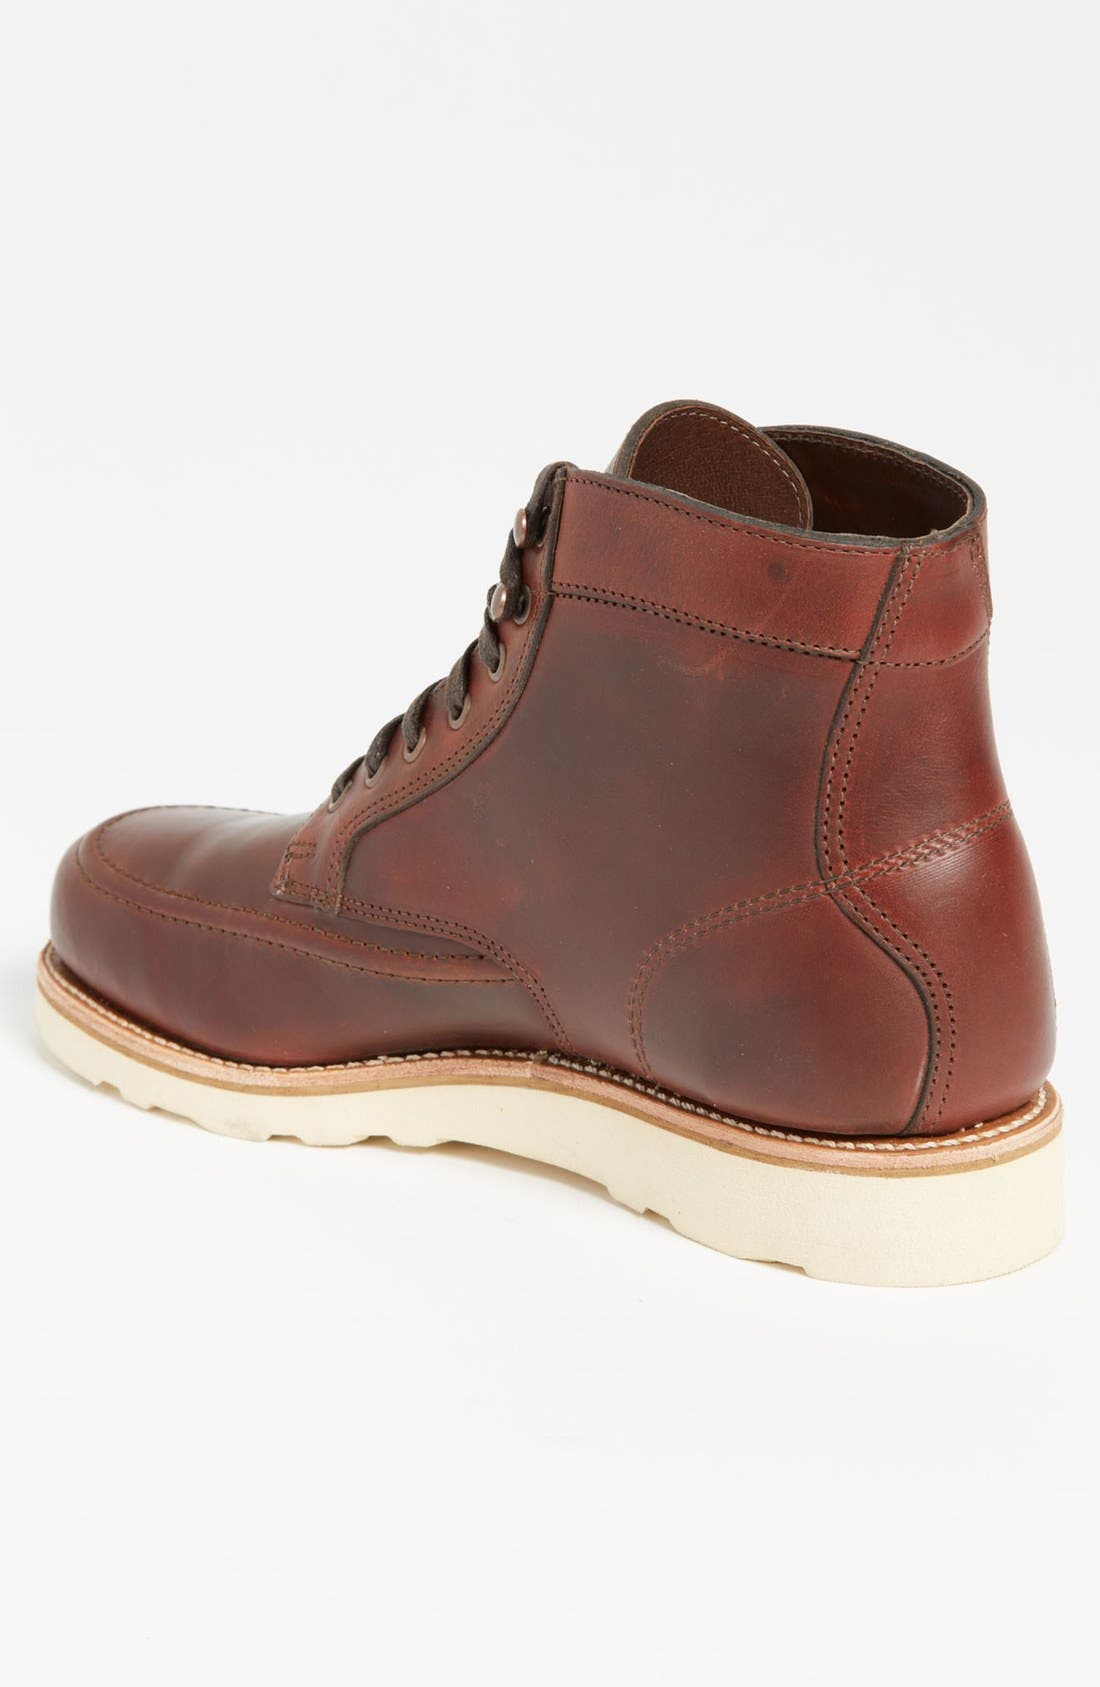 Alternate Image 2  - Wolverine '1000 Mile - Emerson' Moc Toe Boot (Online Only)